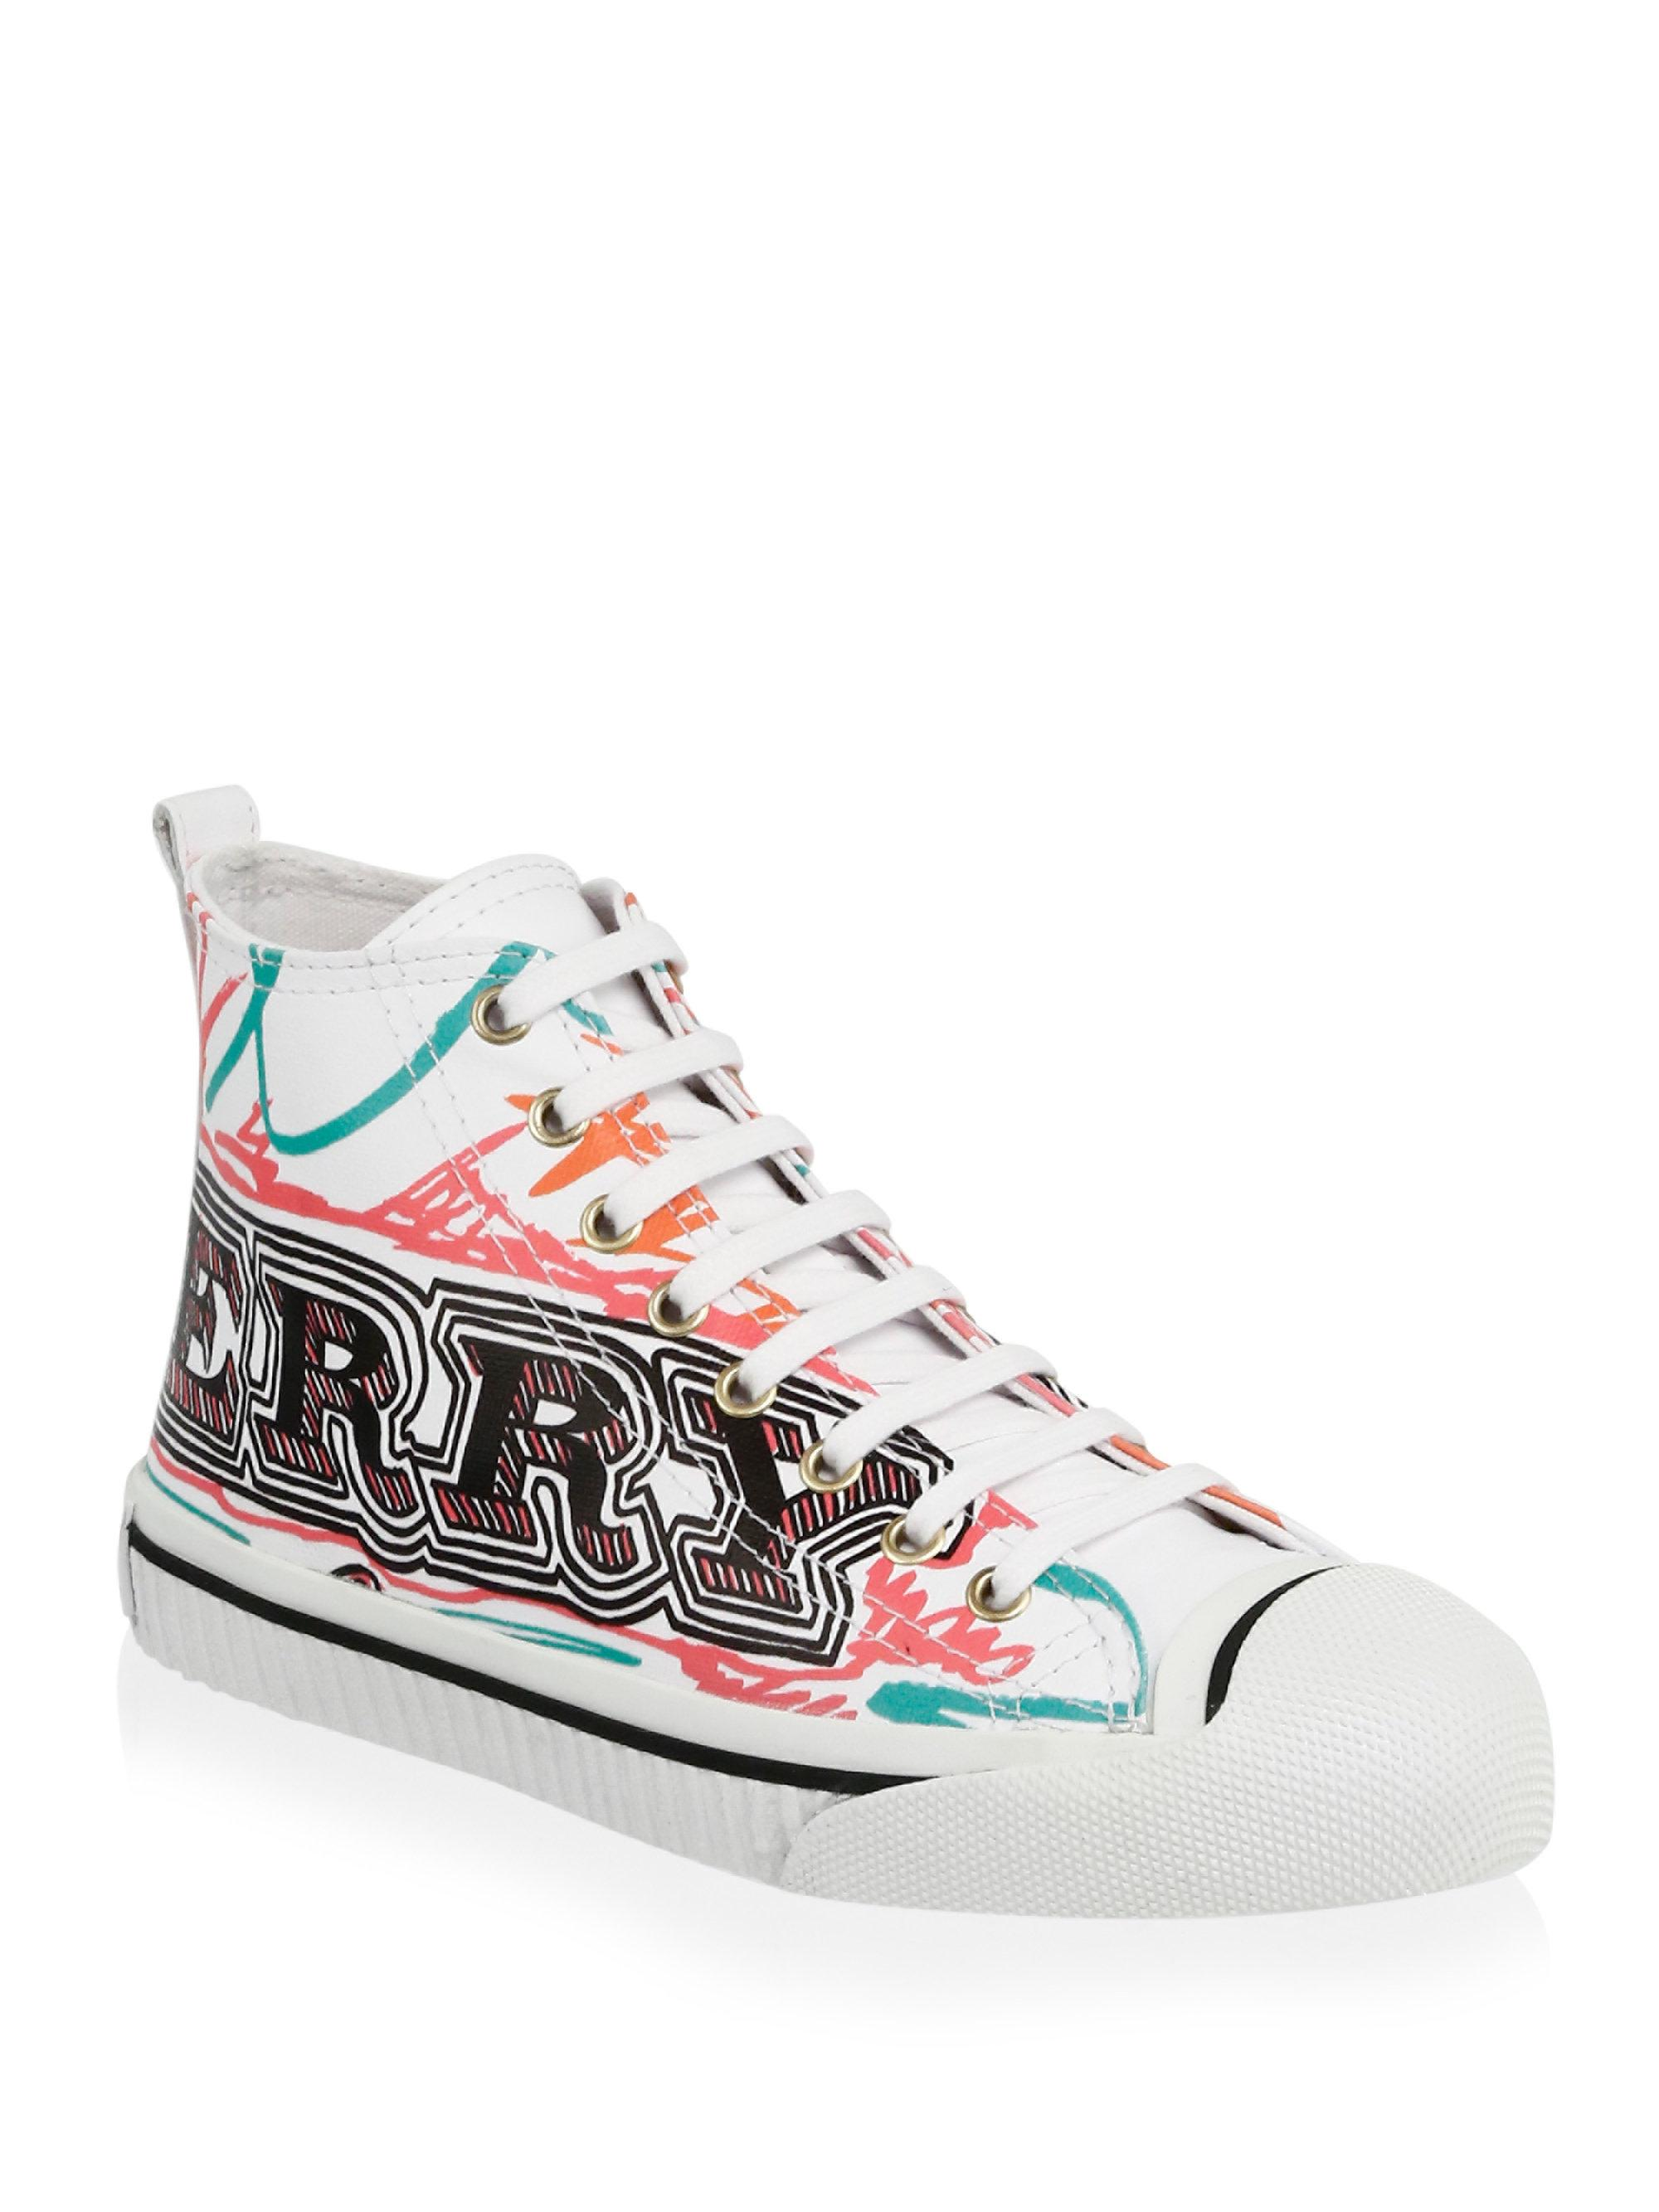 Burberry Kingly Printed Hi-Top Sneakers Nk3Htc0